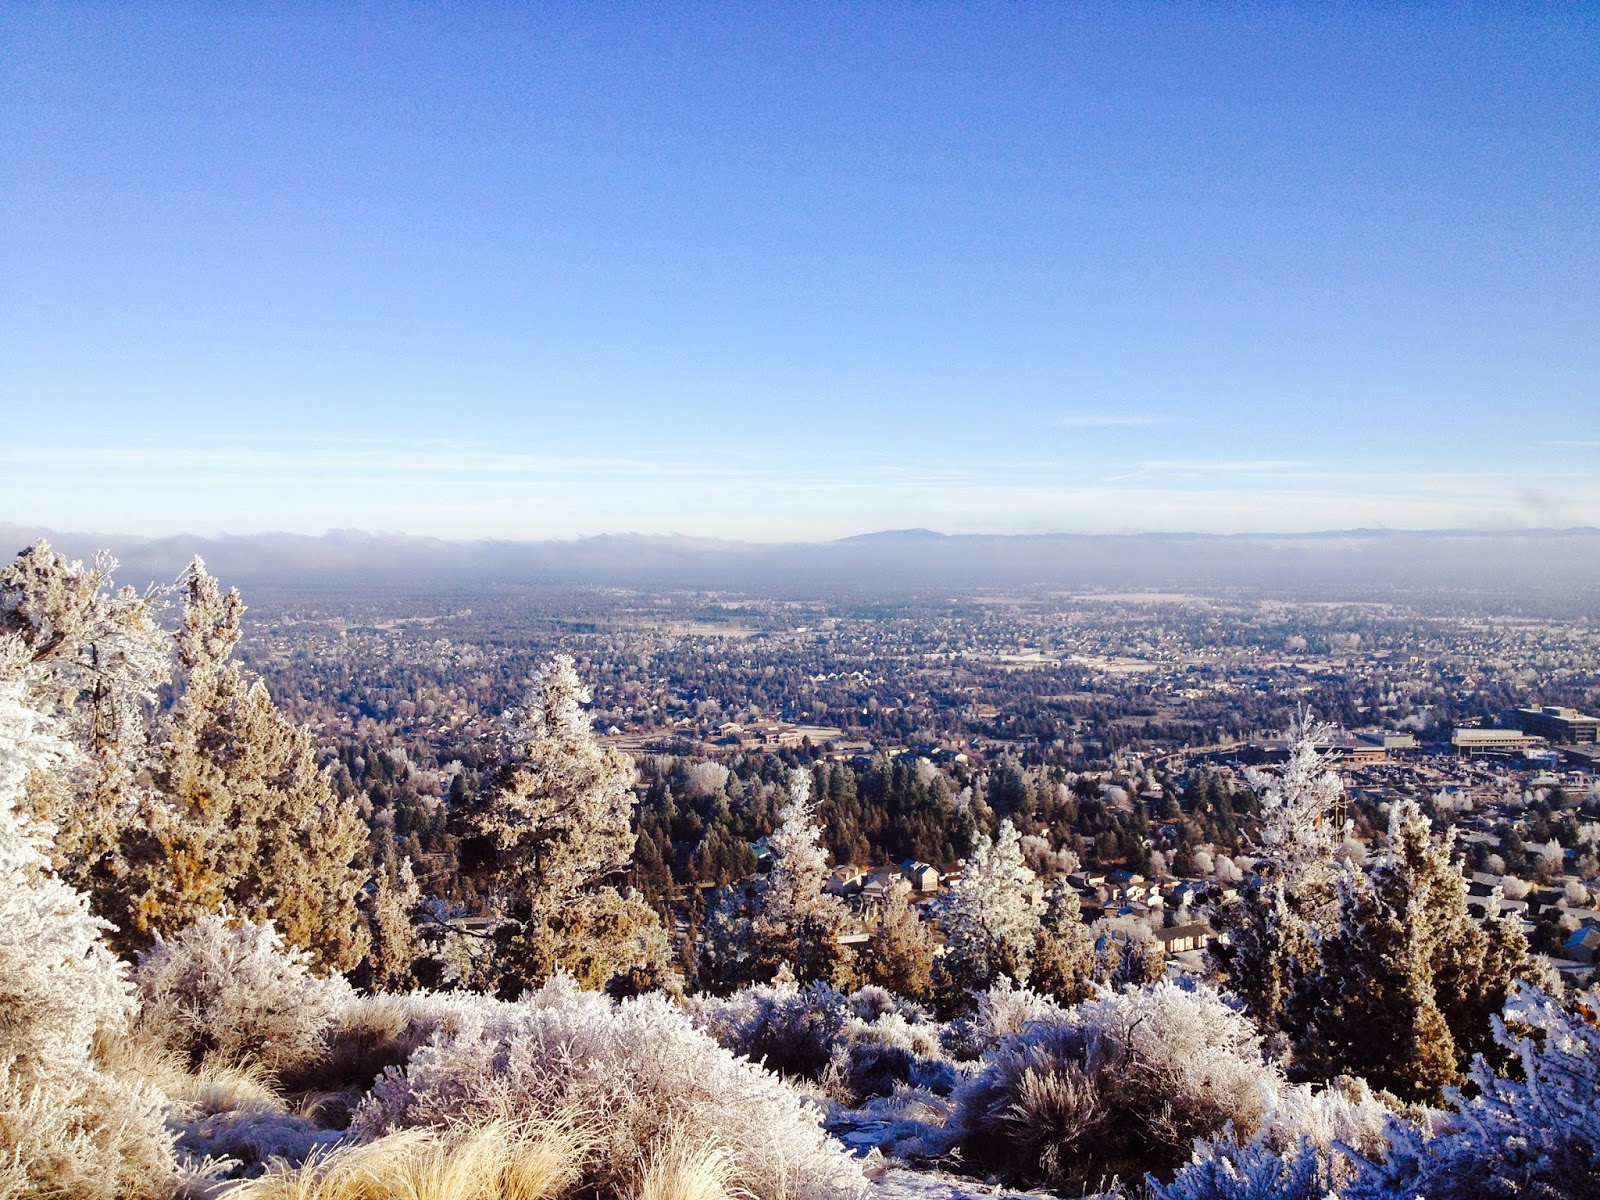 The scene from the top of Pilot Butte in Bend